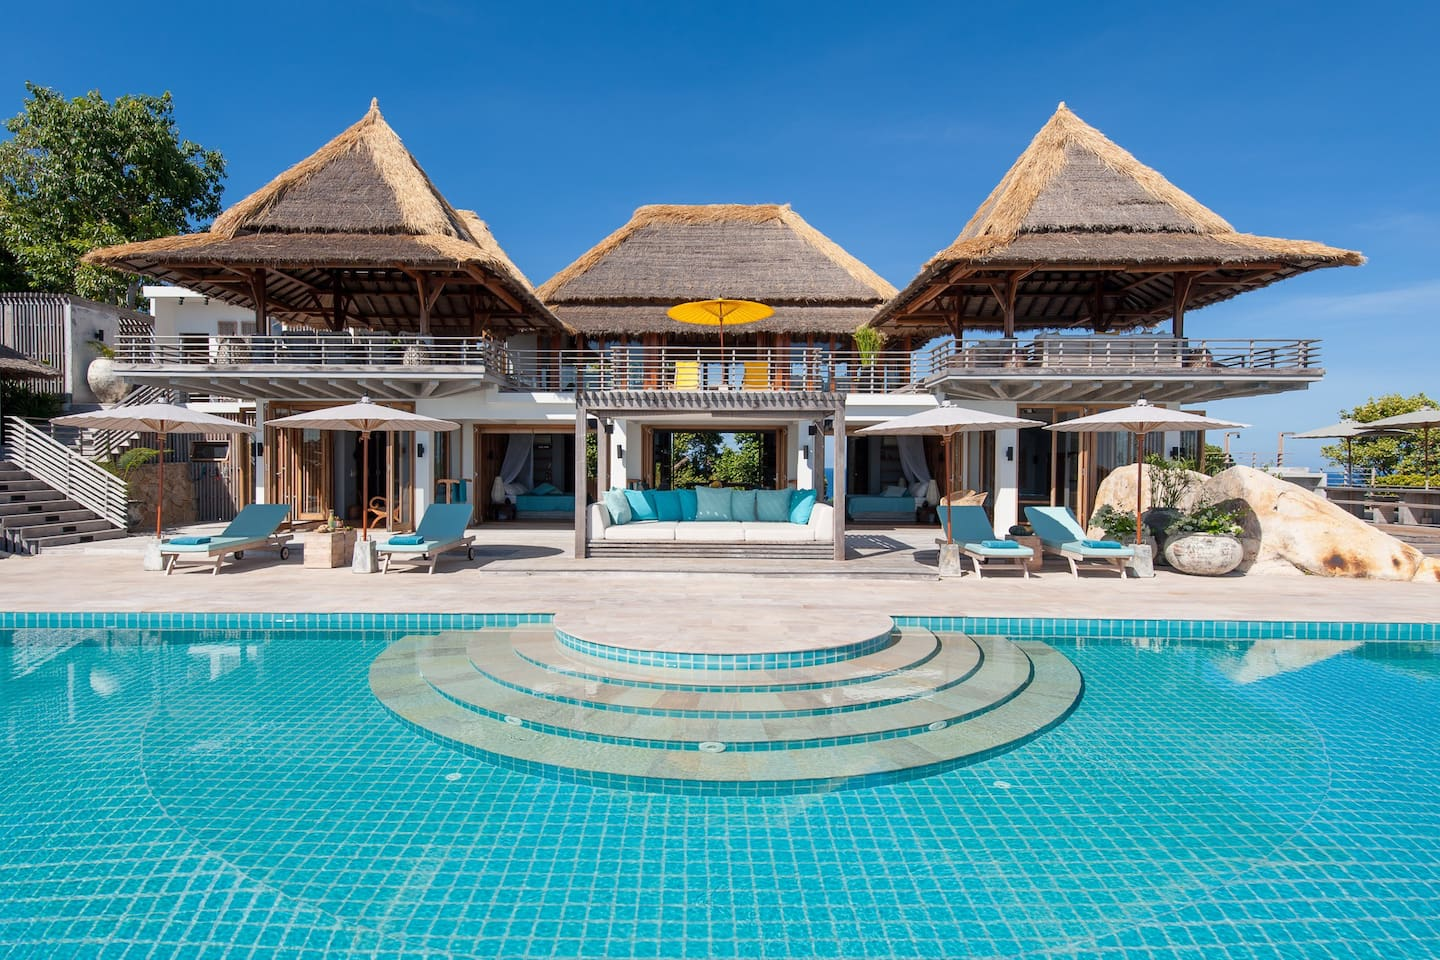 10 truly amazing airbnb rentals from across asia bk magazine online